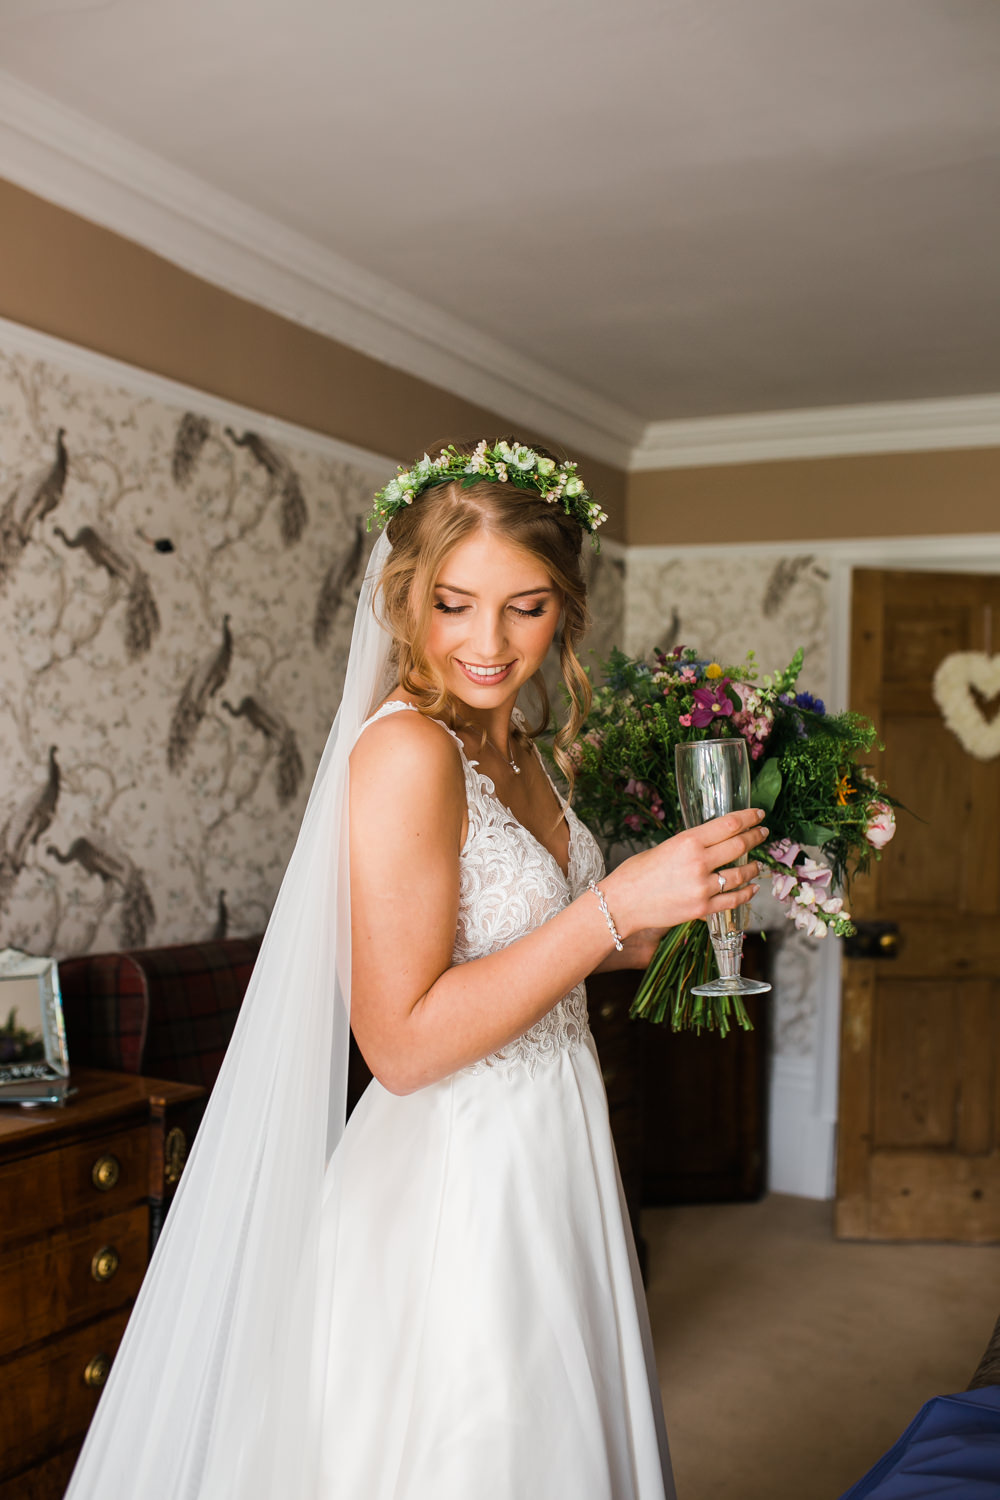 Bride Bridal V Neck A Line Dress Gown Lace Edged Veil Flower Crown Multicoloured Bouquet Lincolnshire Tipi Wedding Jessy Jones Photography